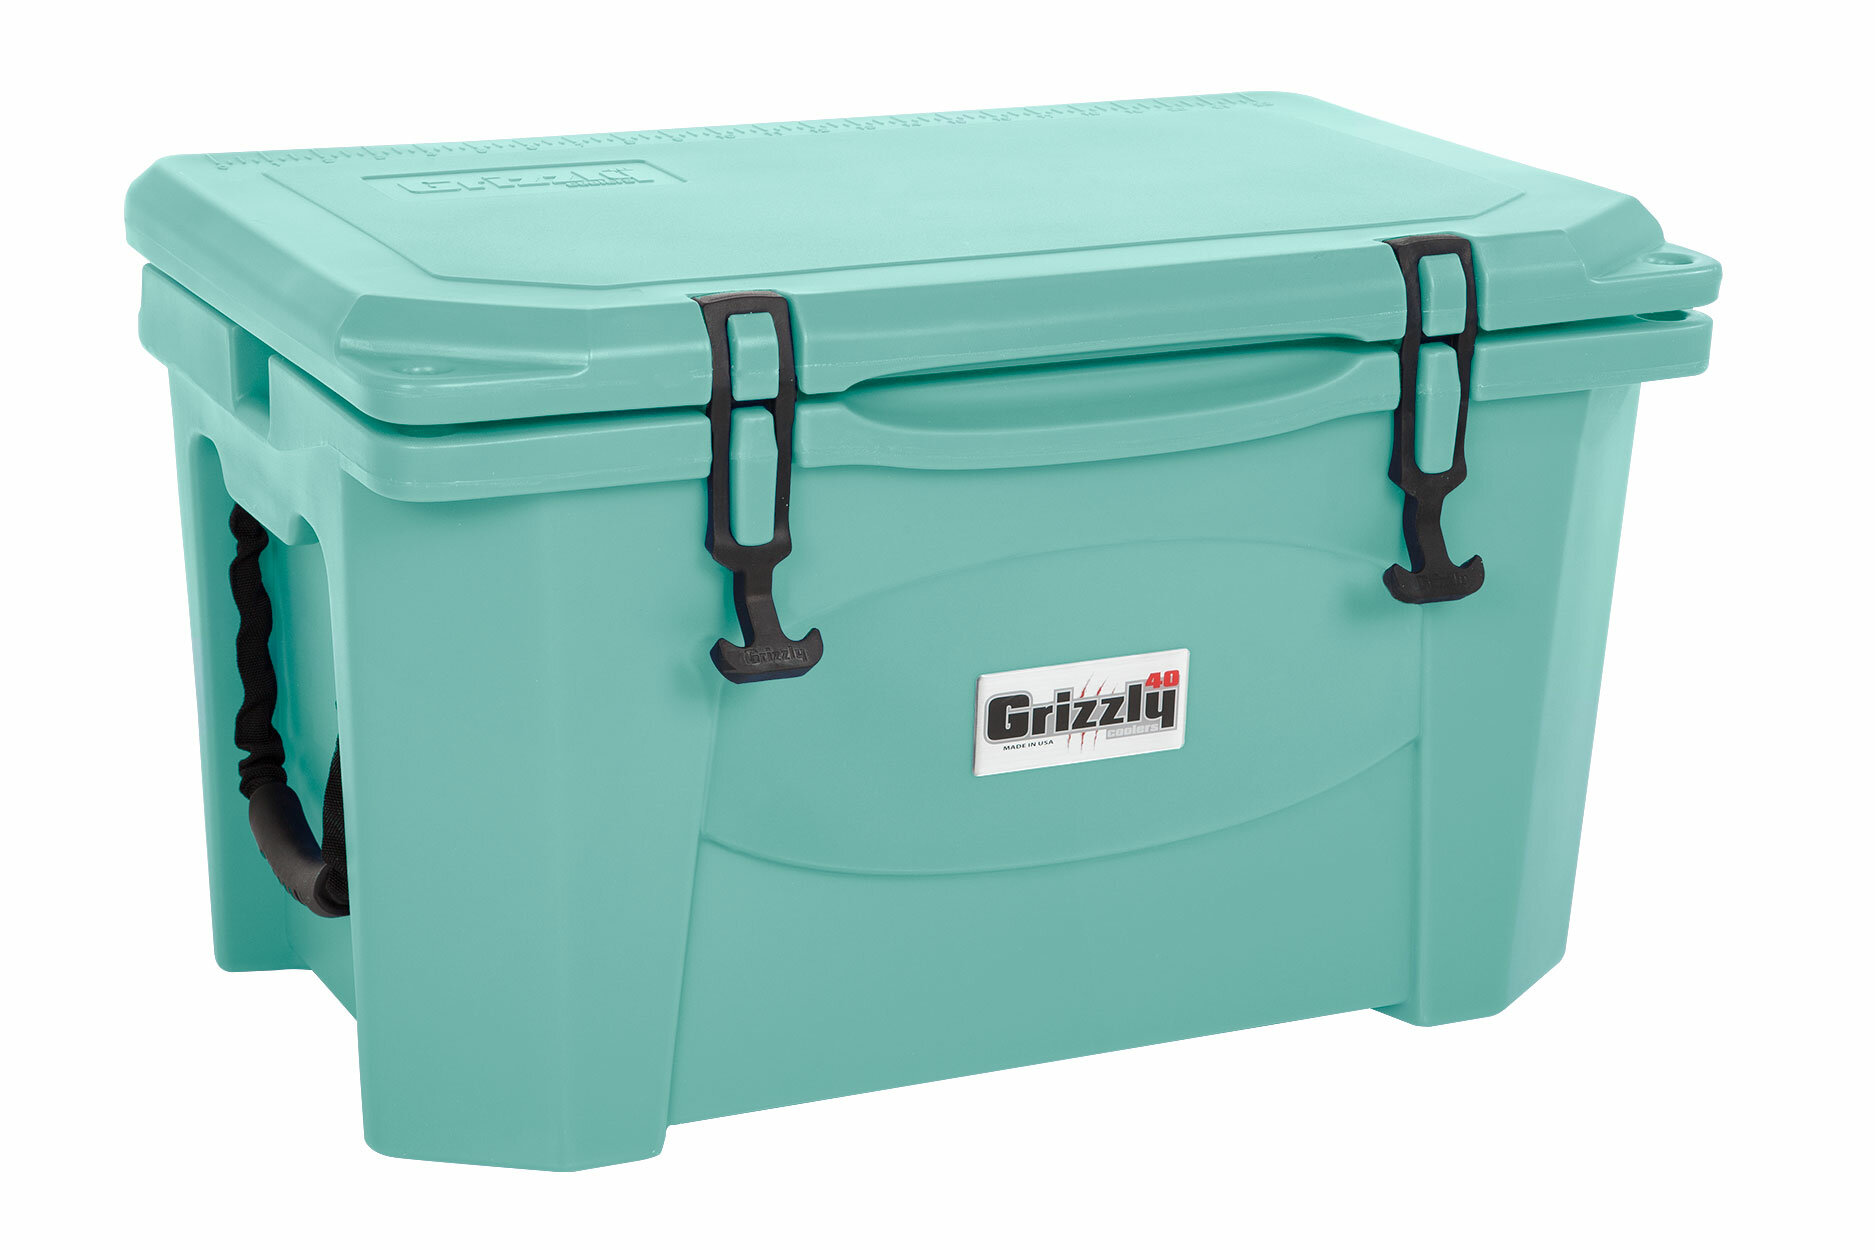 Green Styrofoam Coolers ~ Grizzly coolers qt rotomolded cooler sea foam green ebay